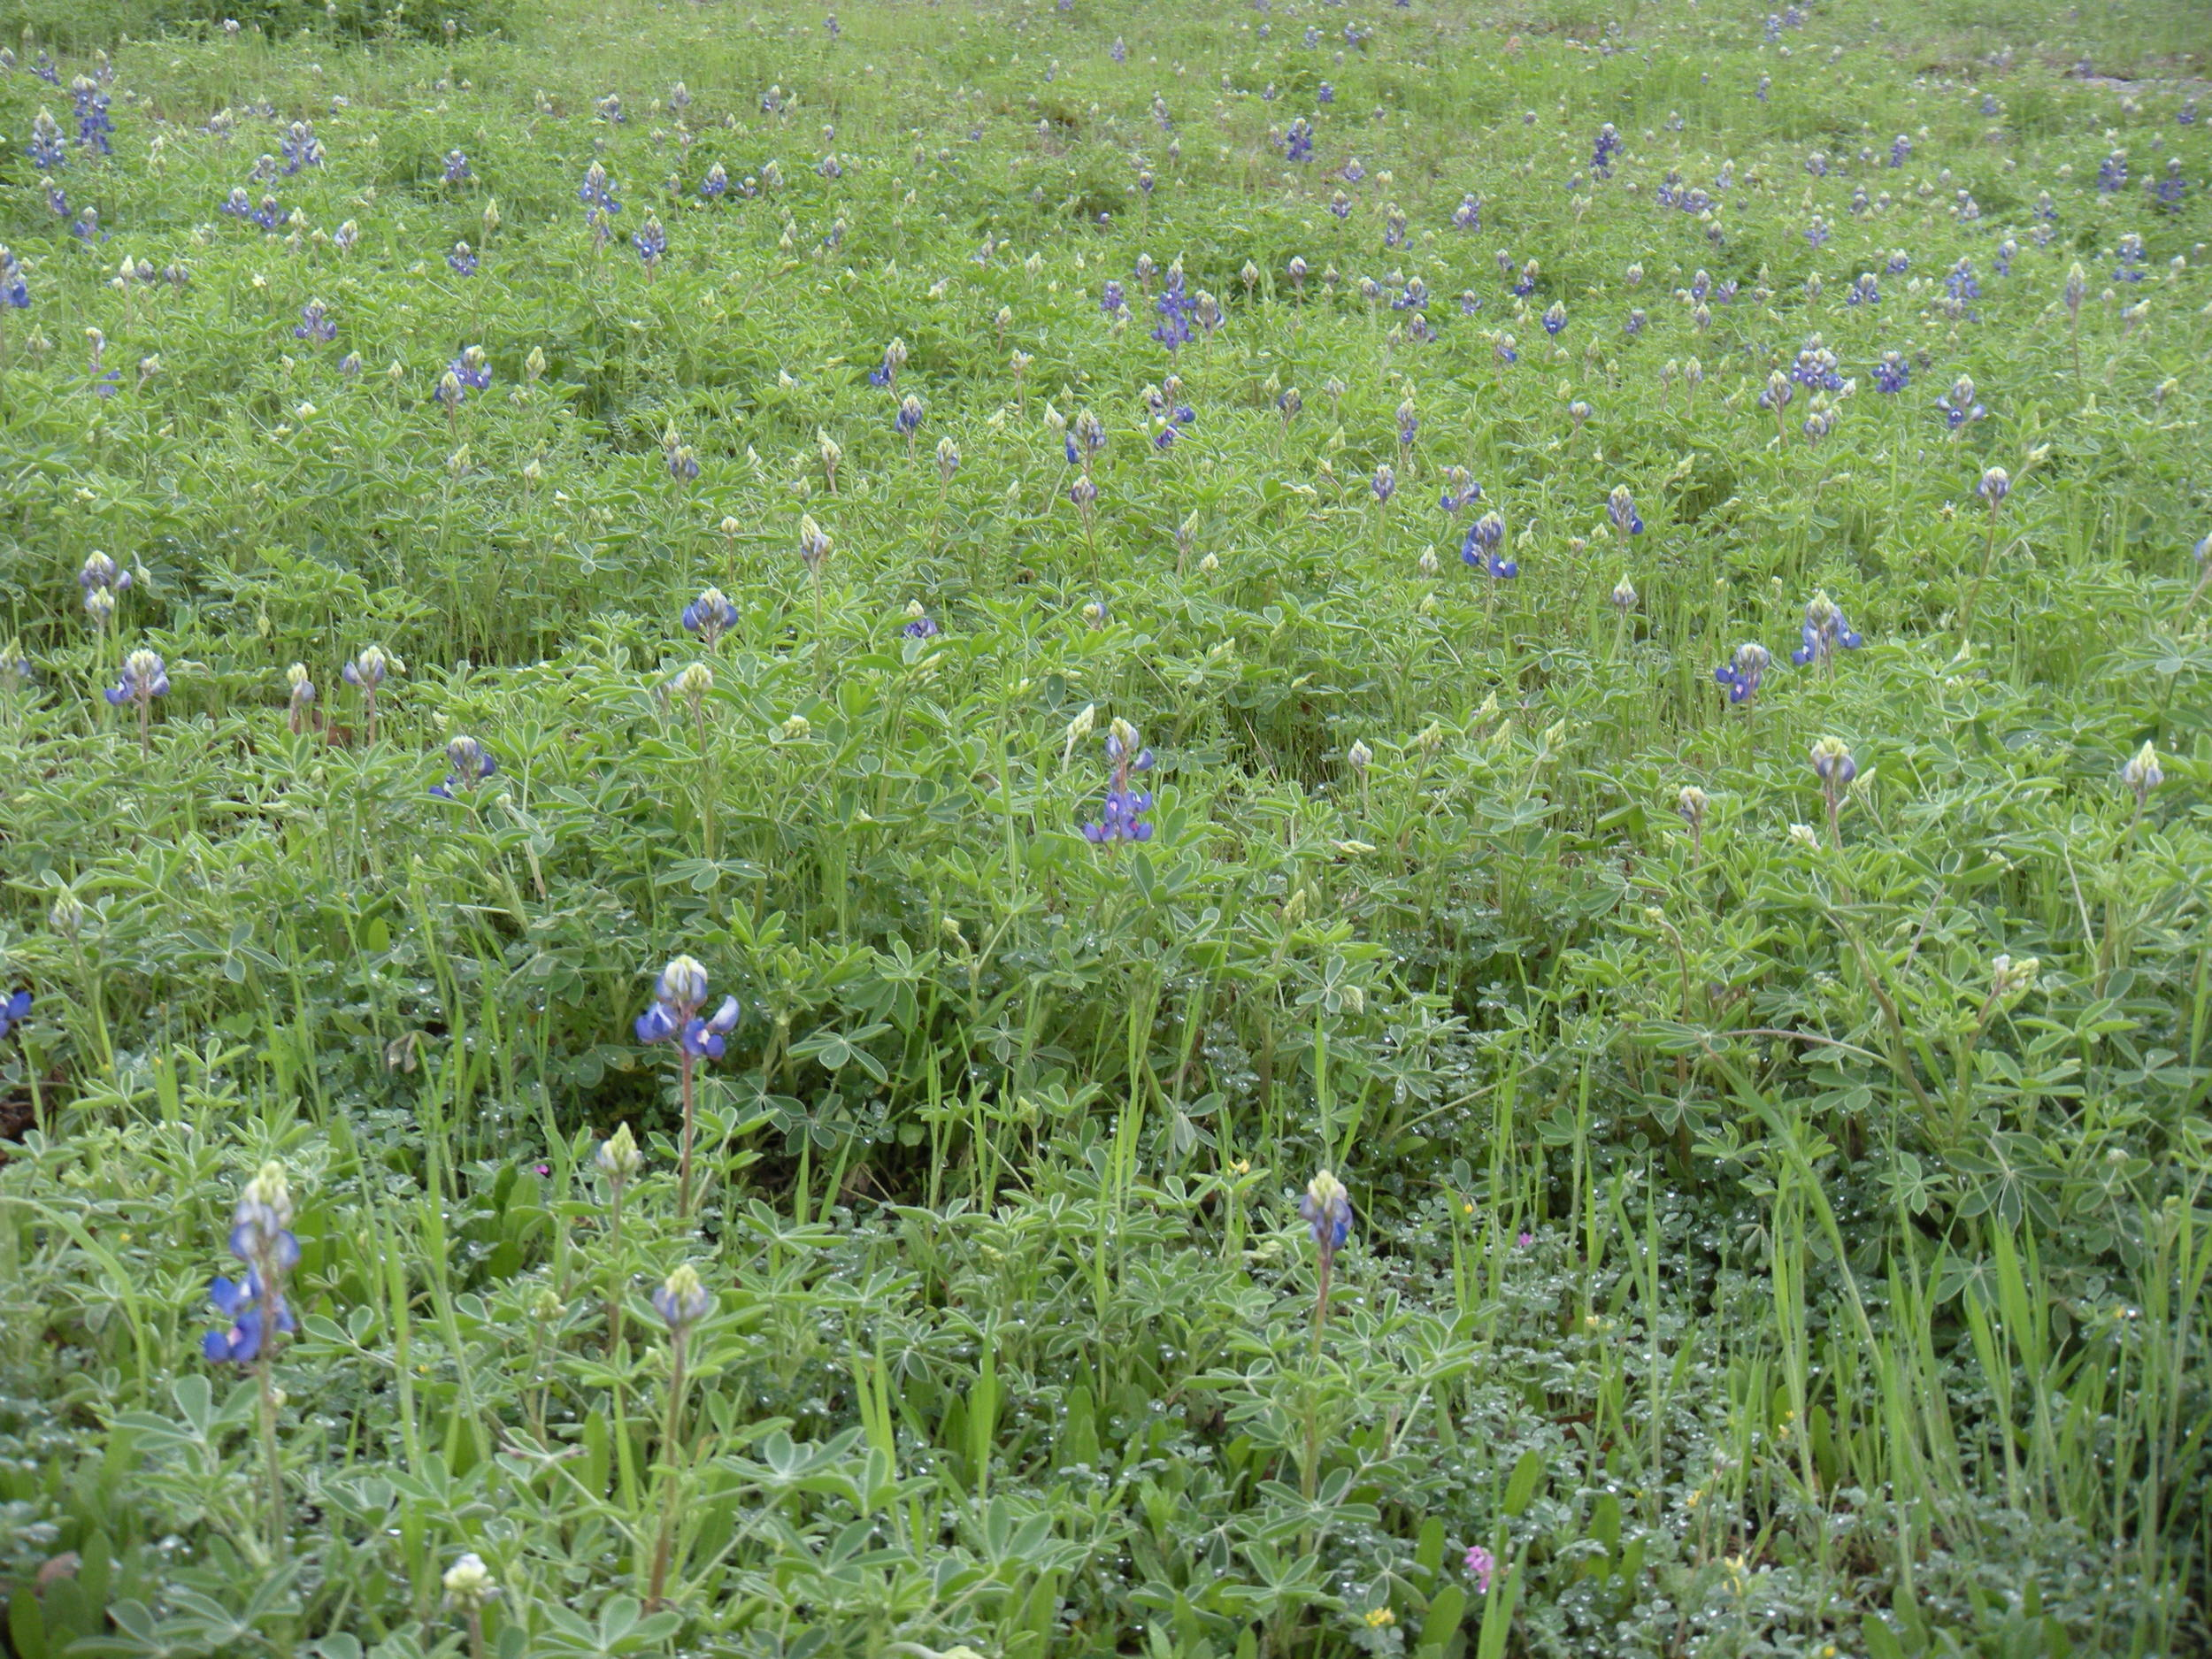 Bluebonnets and Indian paintbrush blanket the land adjacent to the highway between Columbus and Lake LBJ.  It's a colorful show.